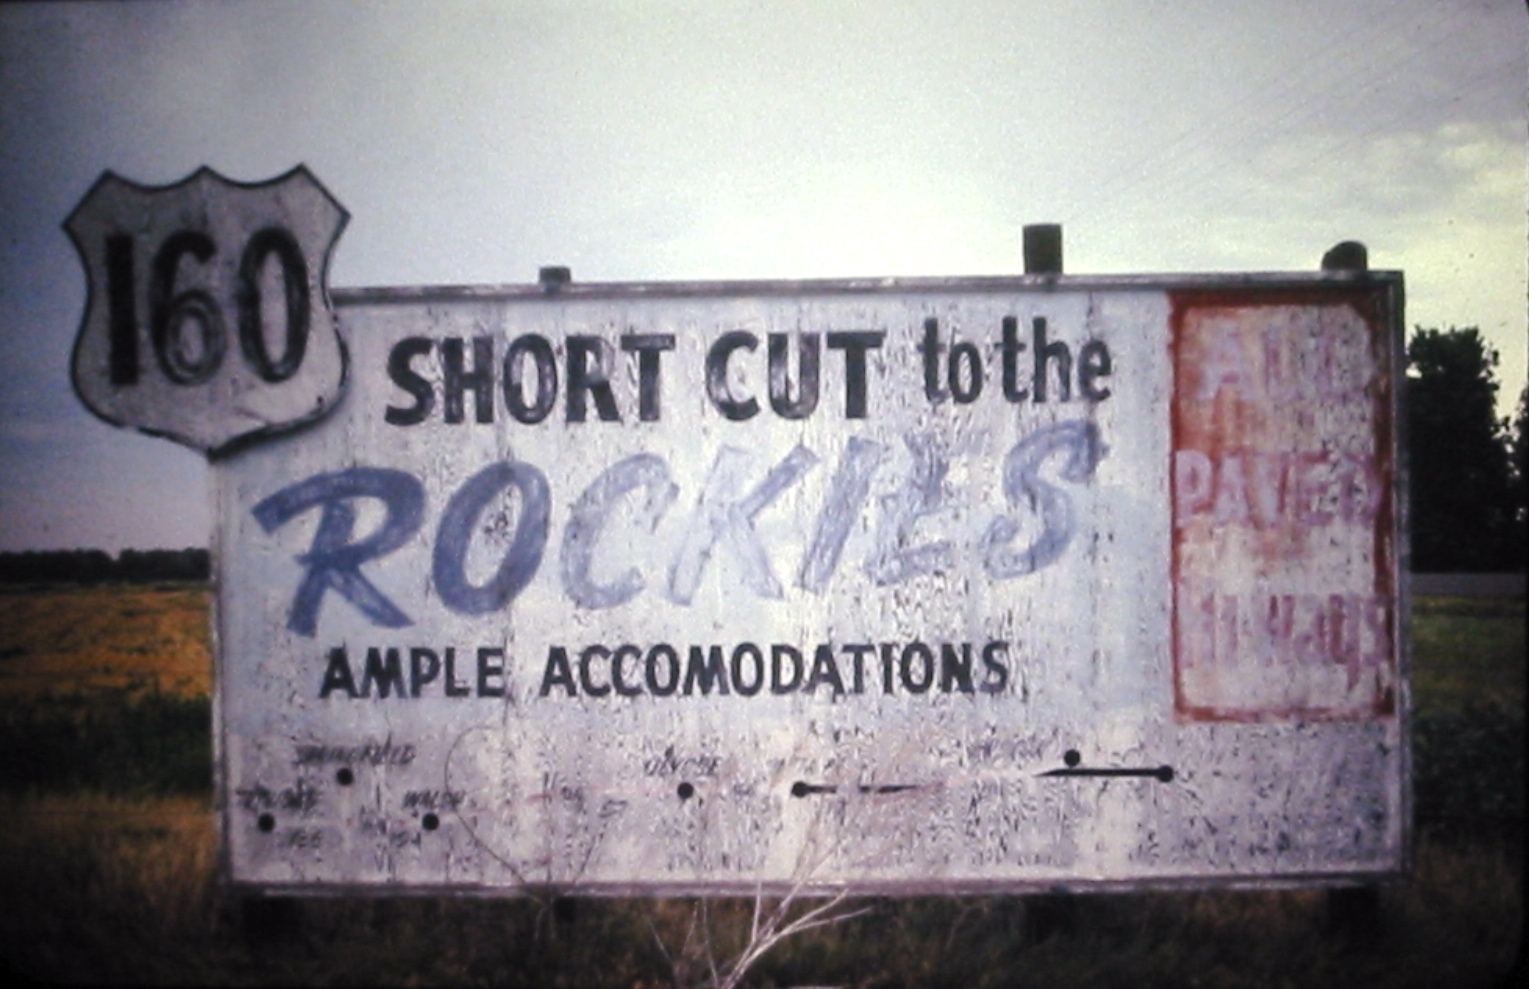 U.S. Route 160 promotional billboard - Bucklin, Kansas U.S.A. - 1974